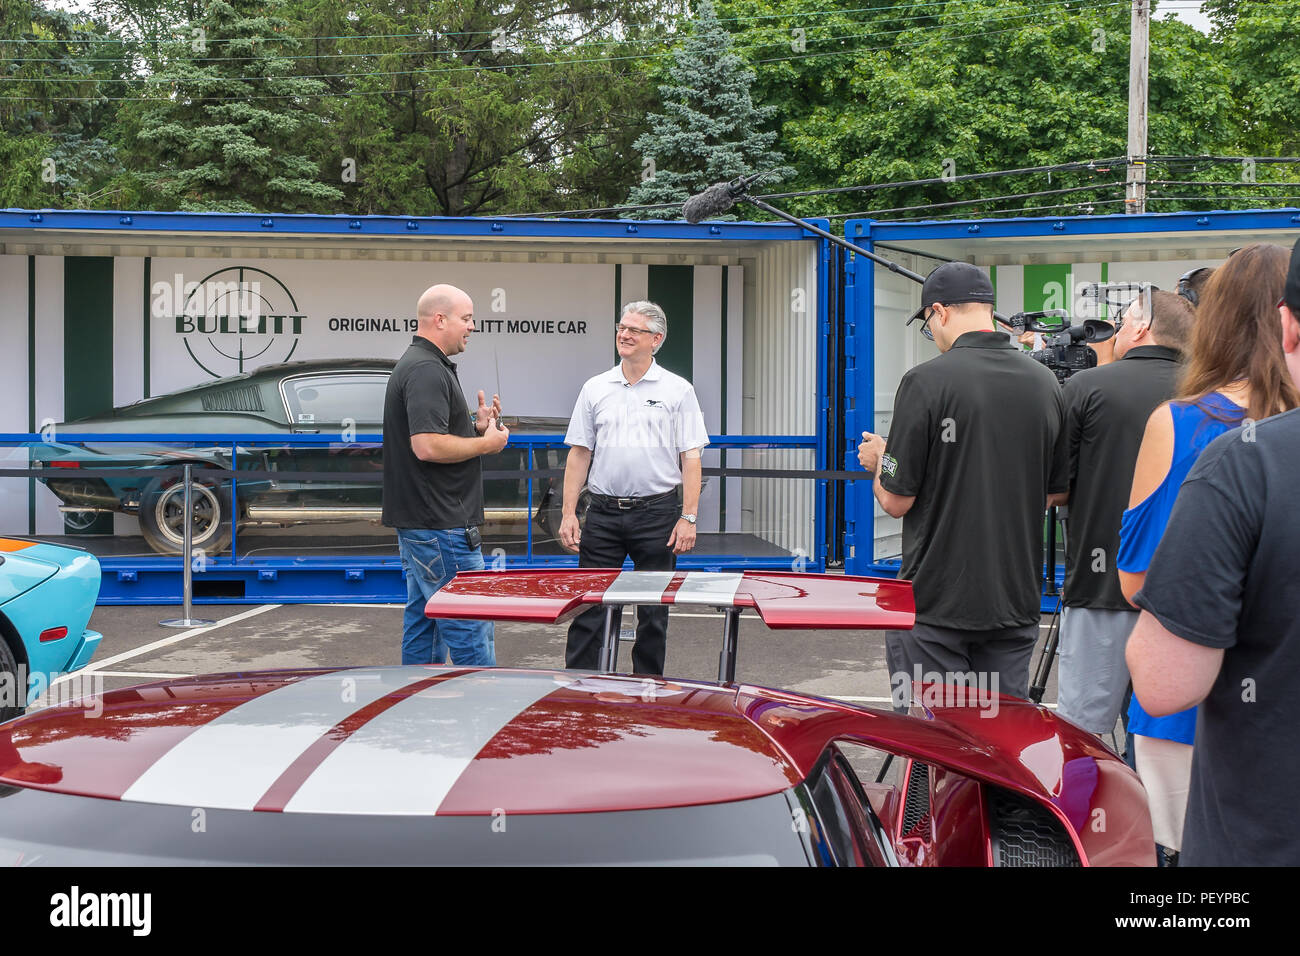 ROYAL OAK, MI/USA - AUGUST 17, 2018: Carl Widman, Chief Engineer, owner Sean Kiernan, original 1968 Ford Bullitt Mustang driven by Steve McQueen. - Stock Image